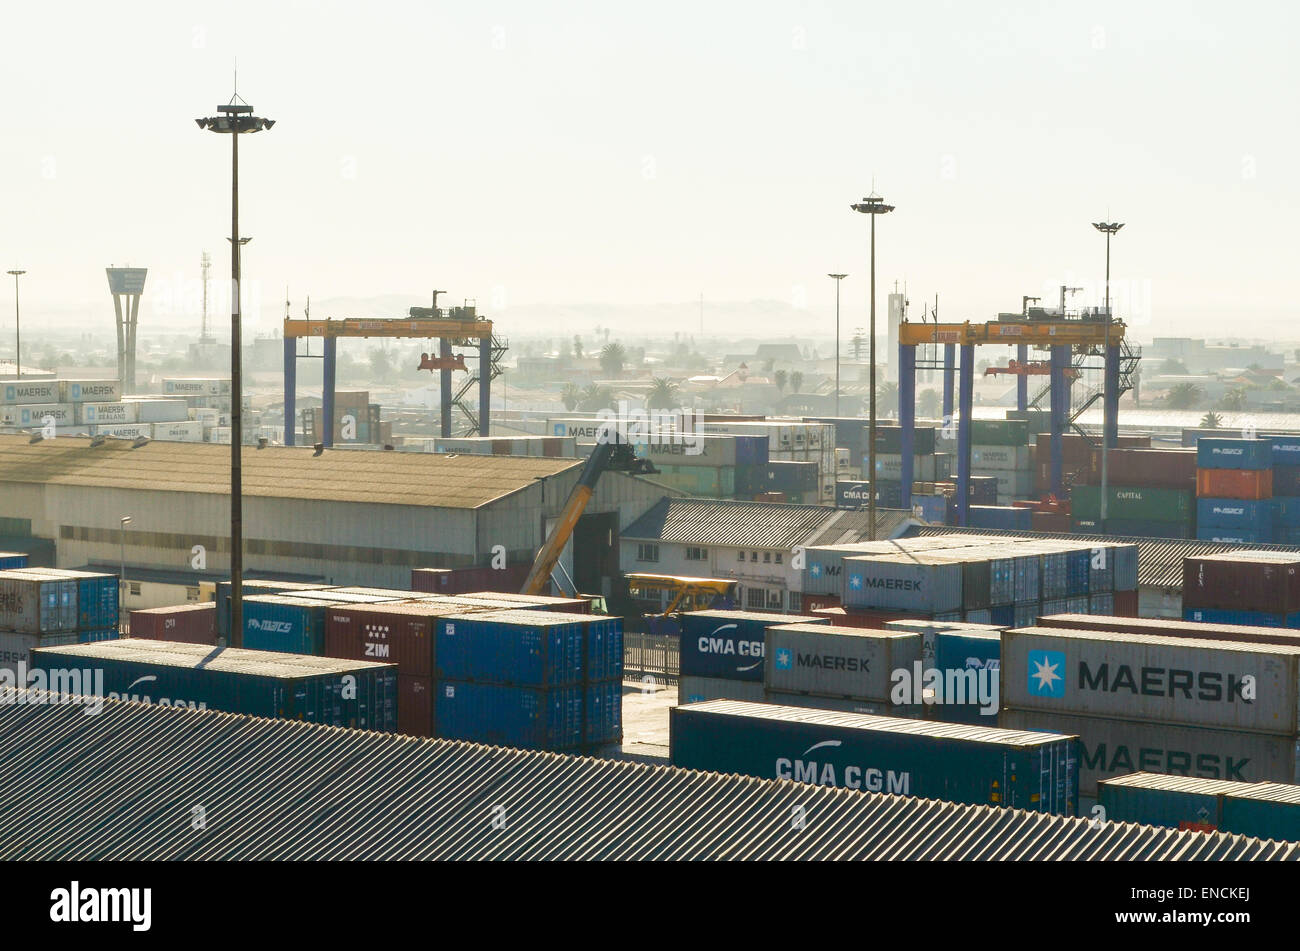 Cranes operating at the container terminal of the port of Walvis Bay, Namibia - Stock Image